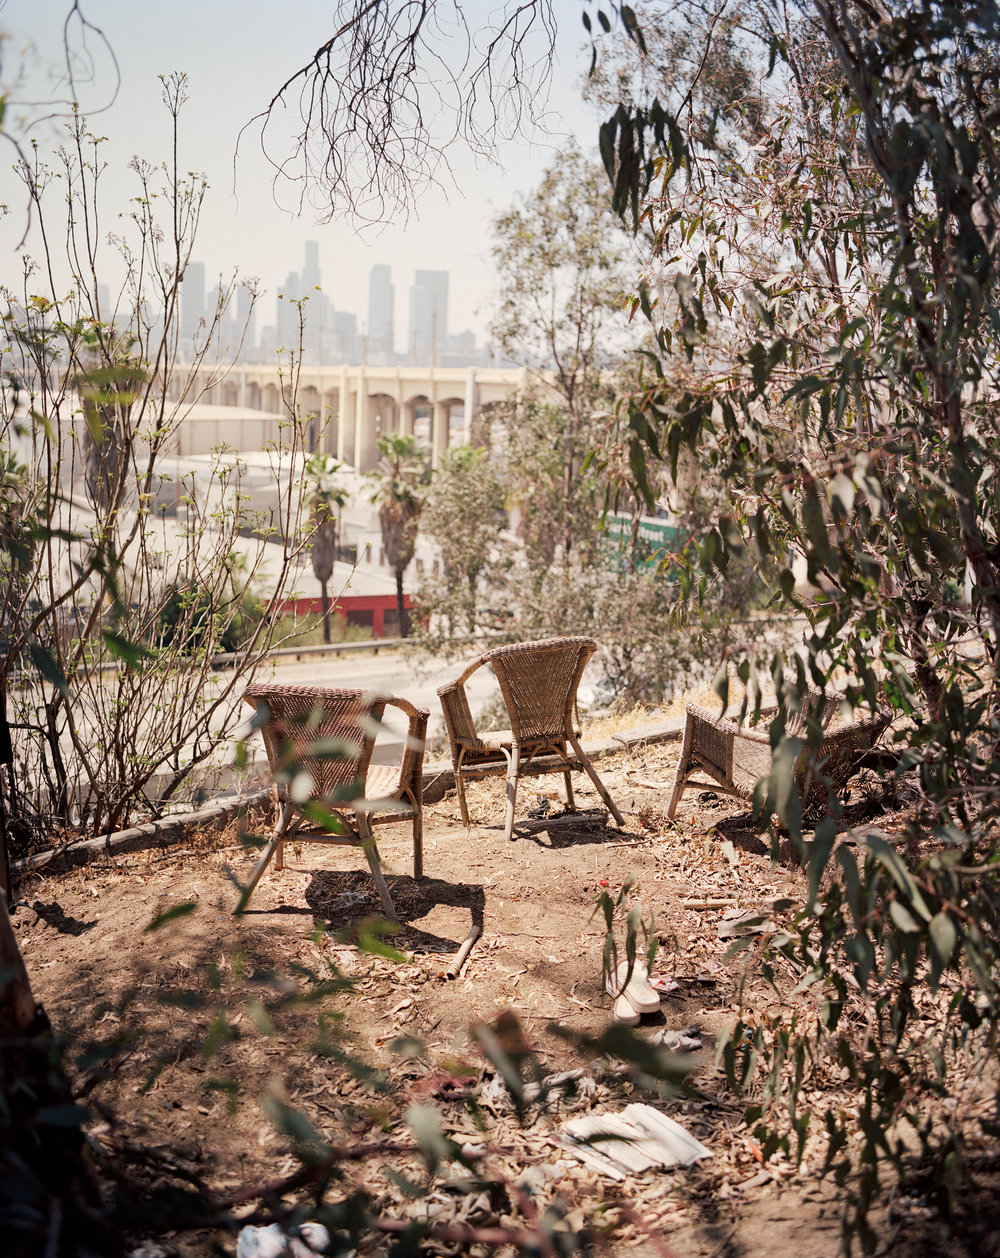 Gregory Halpern - Chairs-view of apocalypse-so it goes.jpg